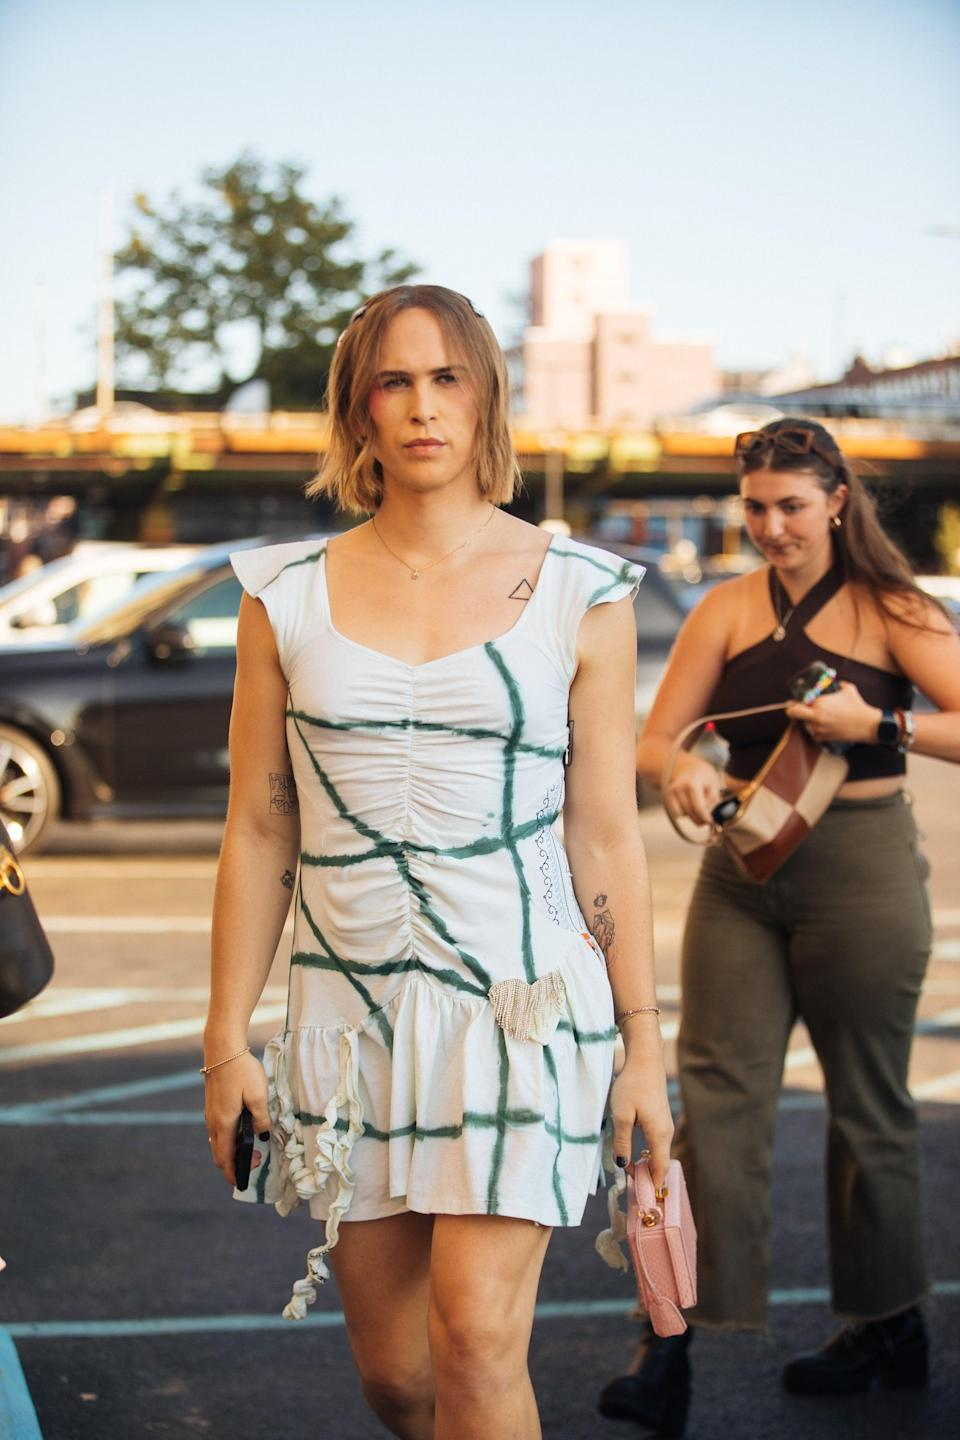 <p>She wore a ruched white dress with green stripes while admiring Collina Strada's rooftop runway show.</p>